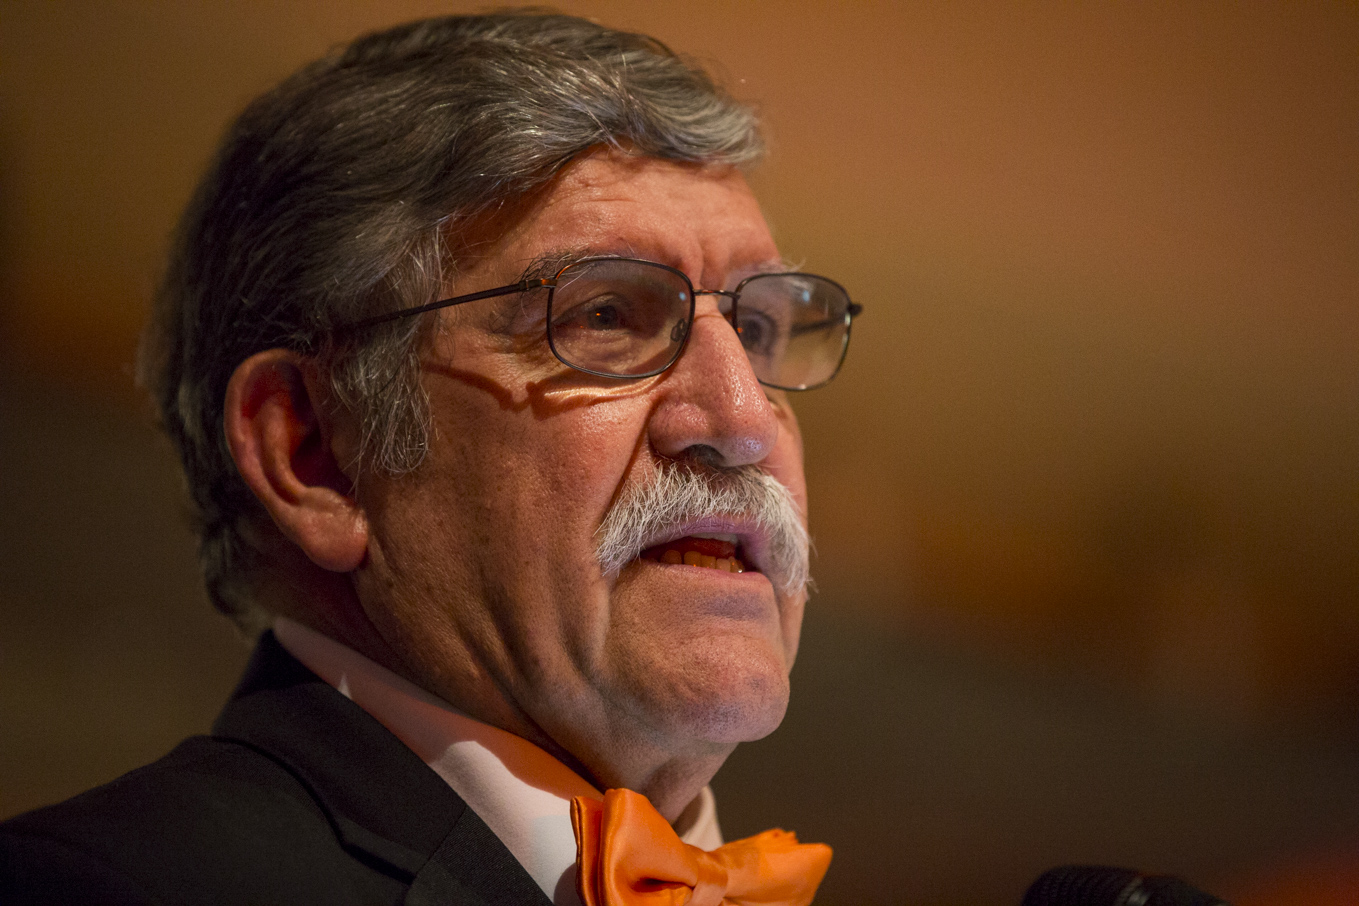 UTSA President Dr. Ricardo Romo speaks after being presented with the the ITC Lifetime Achievement Award.